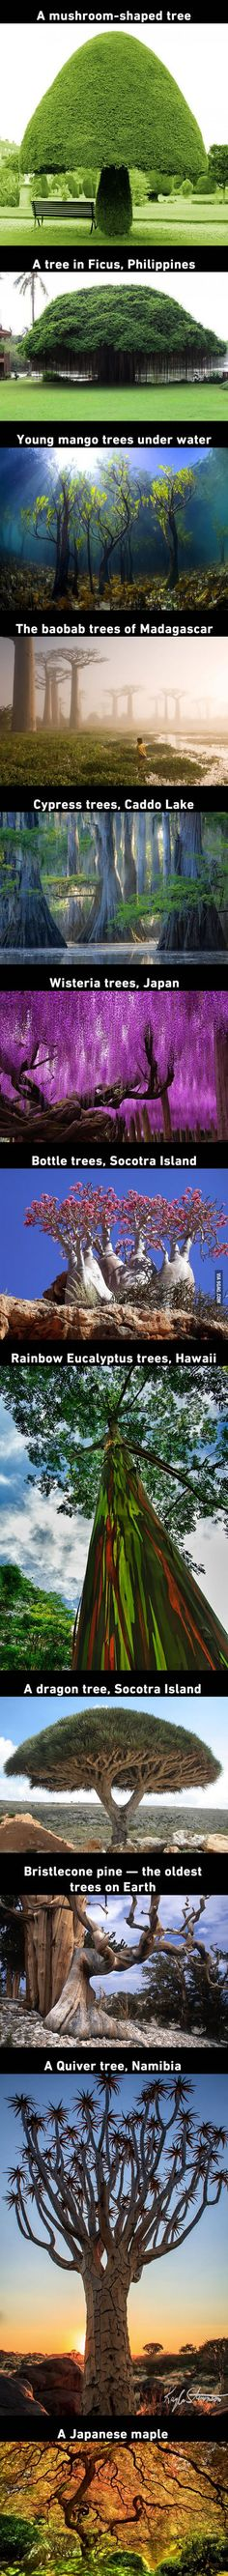 12 Beautiful Trees That You'd Thought They Grow On Pandora From Avatar - Garden Types Beautiful World, Beautiful Places, Beautiful Beautiful, Avatar, Dame Nature, Nature Nature, Nature Quotes, Nature Animals, Nature Tree